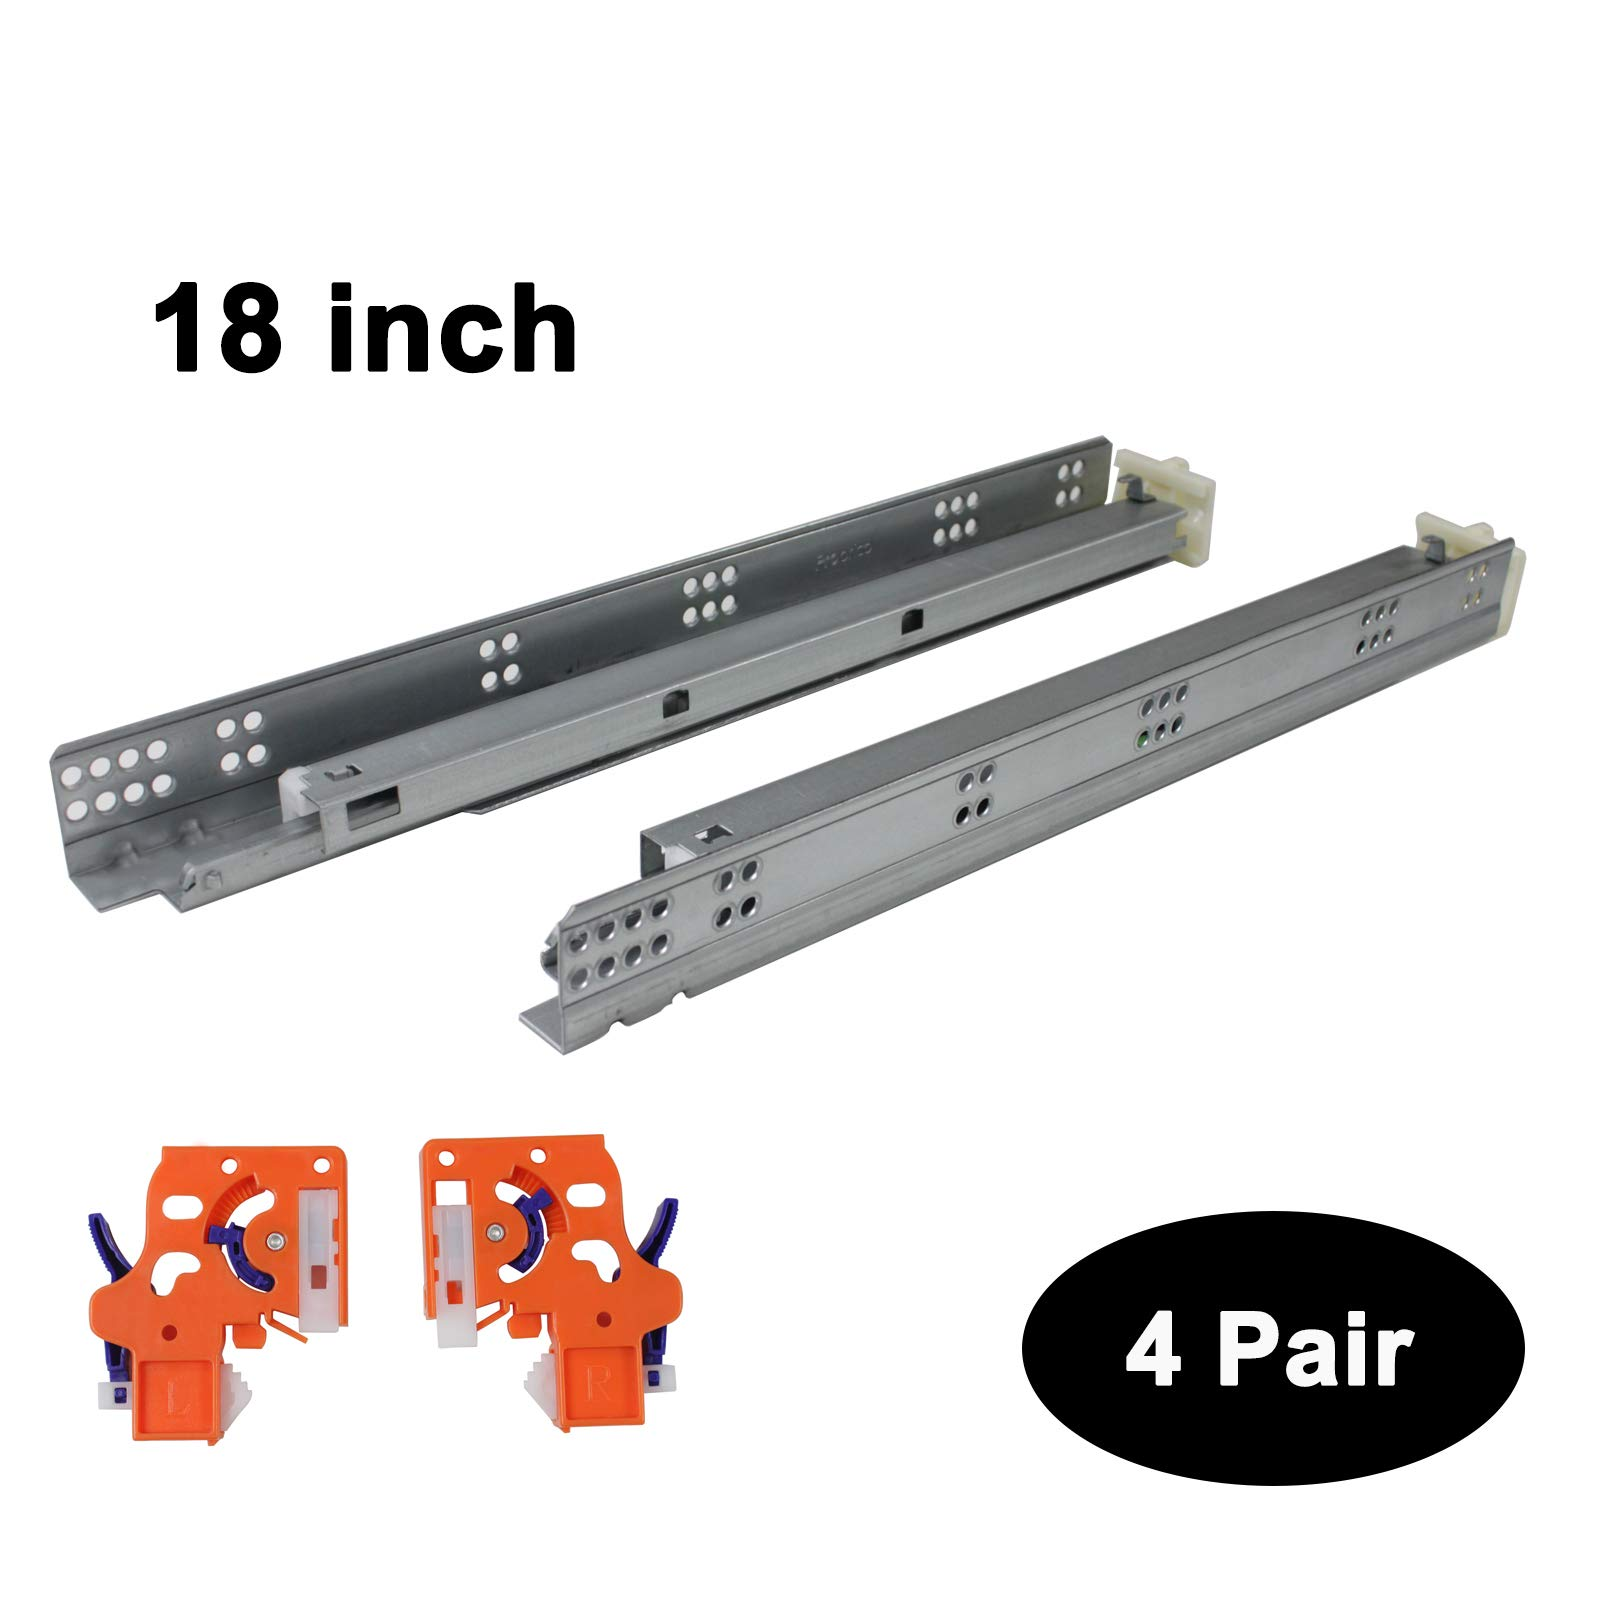 Pairs of Self Soft Close Under/Bottom Rear Mounting Drawer Slides 18''21''inch Concealed Drawer Runners;Locking Devices;Rear Mounting Brackets;Screws and Instructions (4 Pairs, 18 inch)